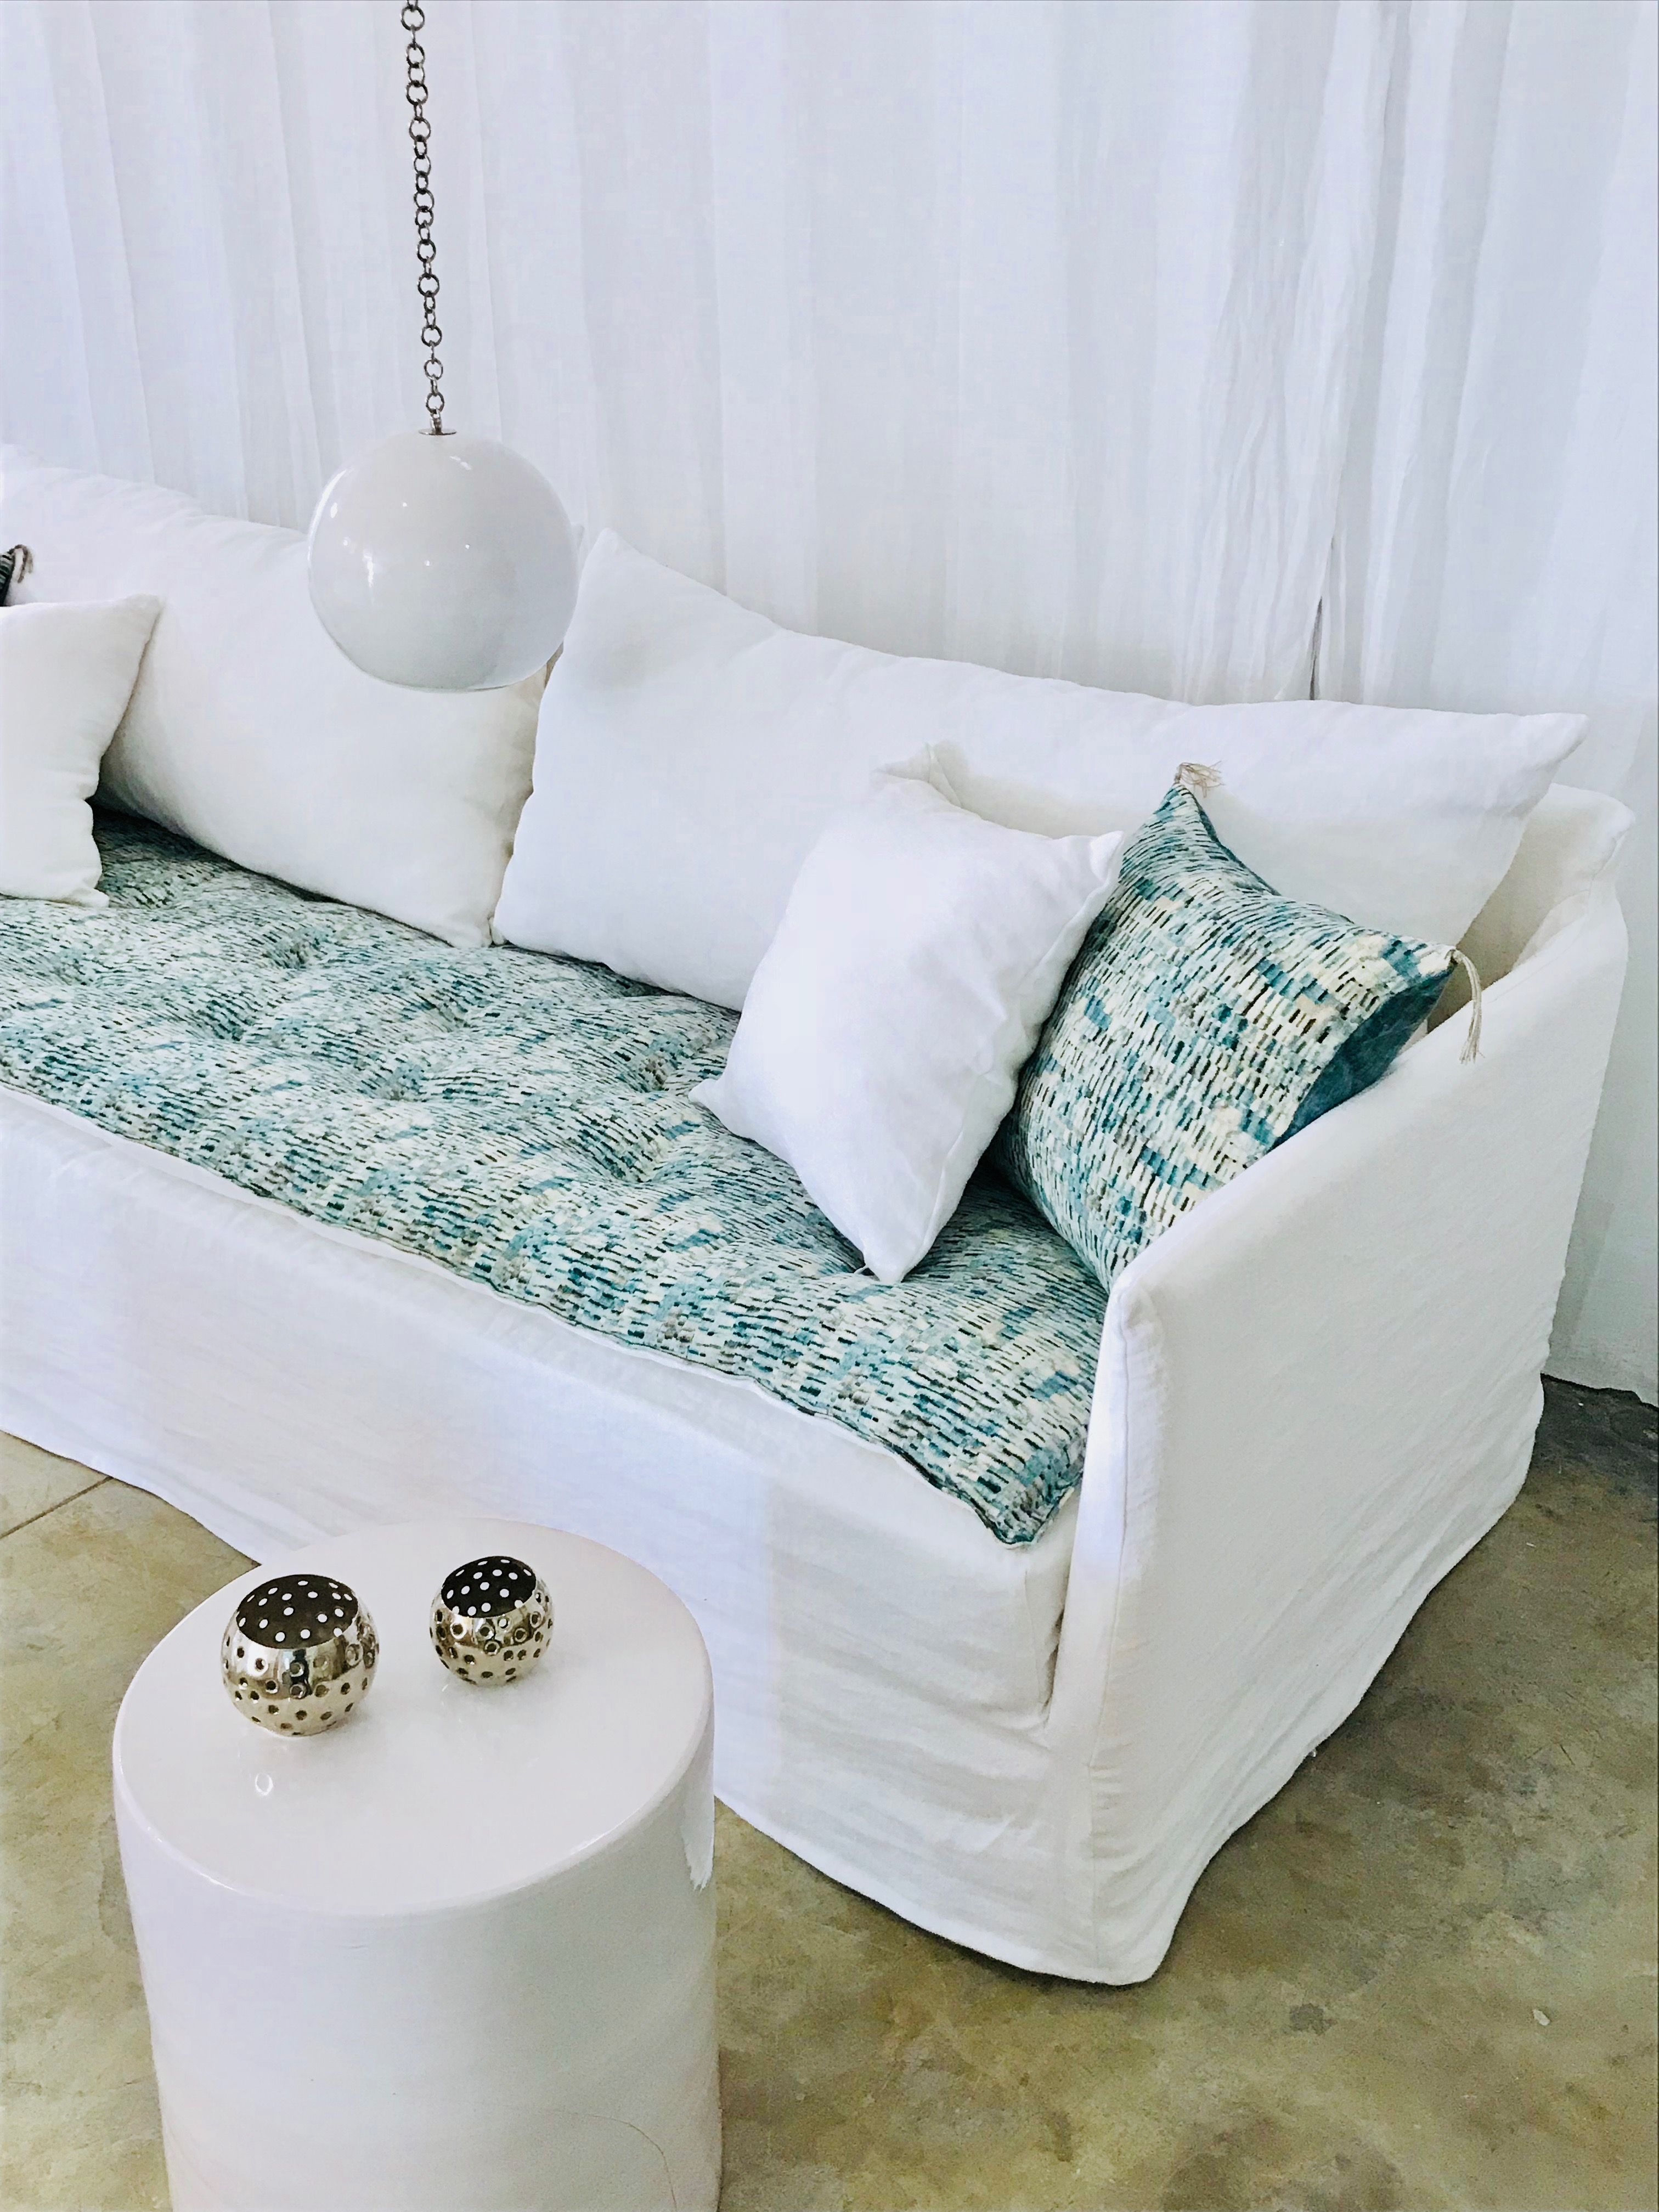 Canape Sur Mesure Lin Lave Blanc Sofa Cover Cobalt In Love 2 Canapes Blancs Meuble Blanc Idee Deco Appartement